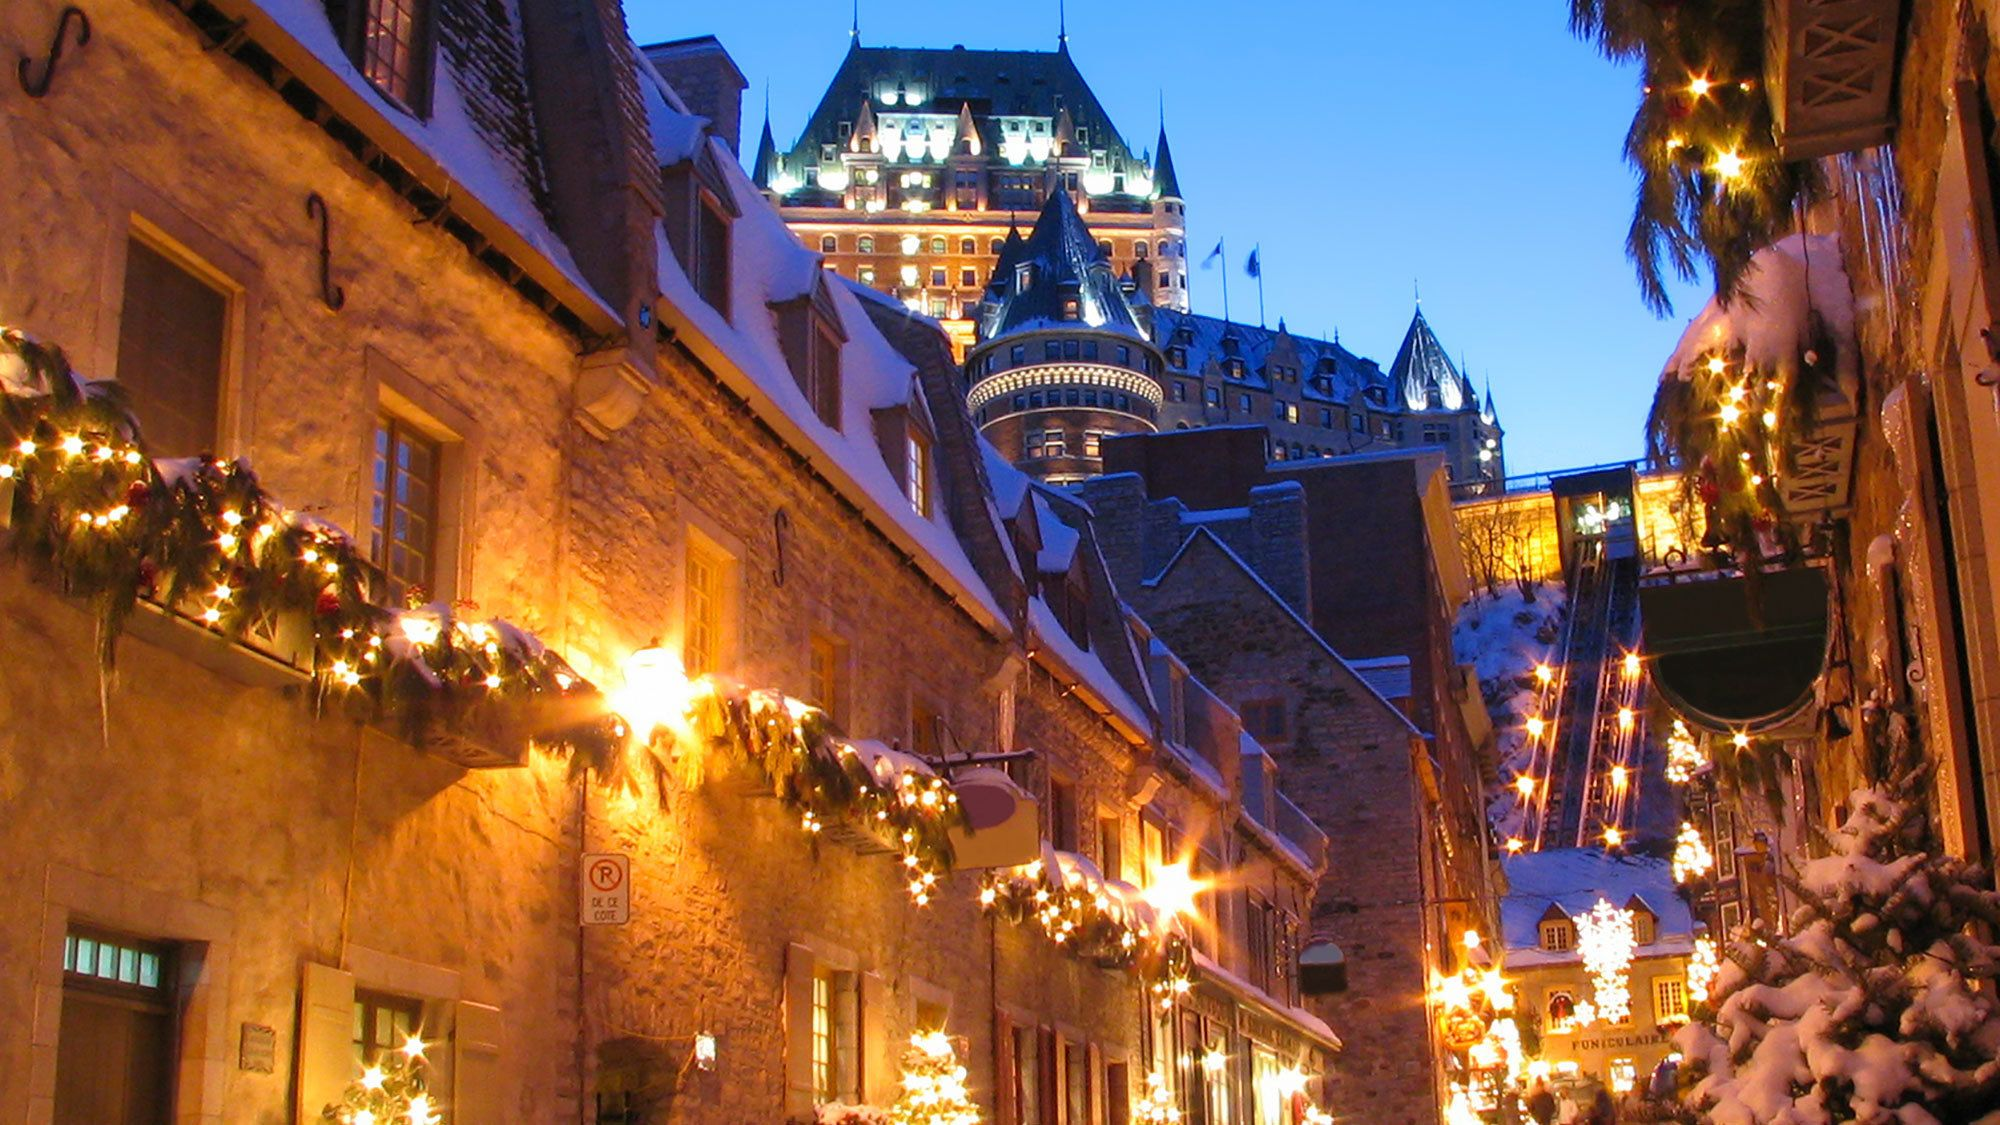 Lighted street at dusk in winter in Quebec City